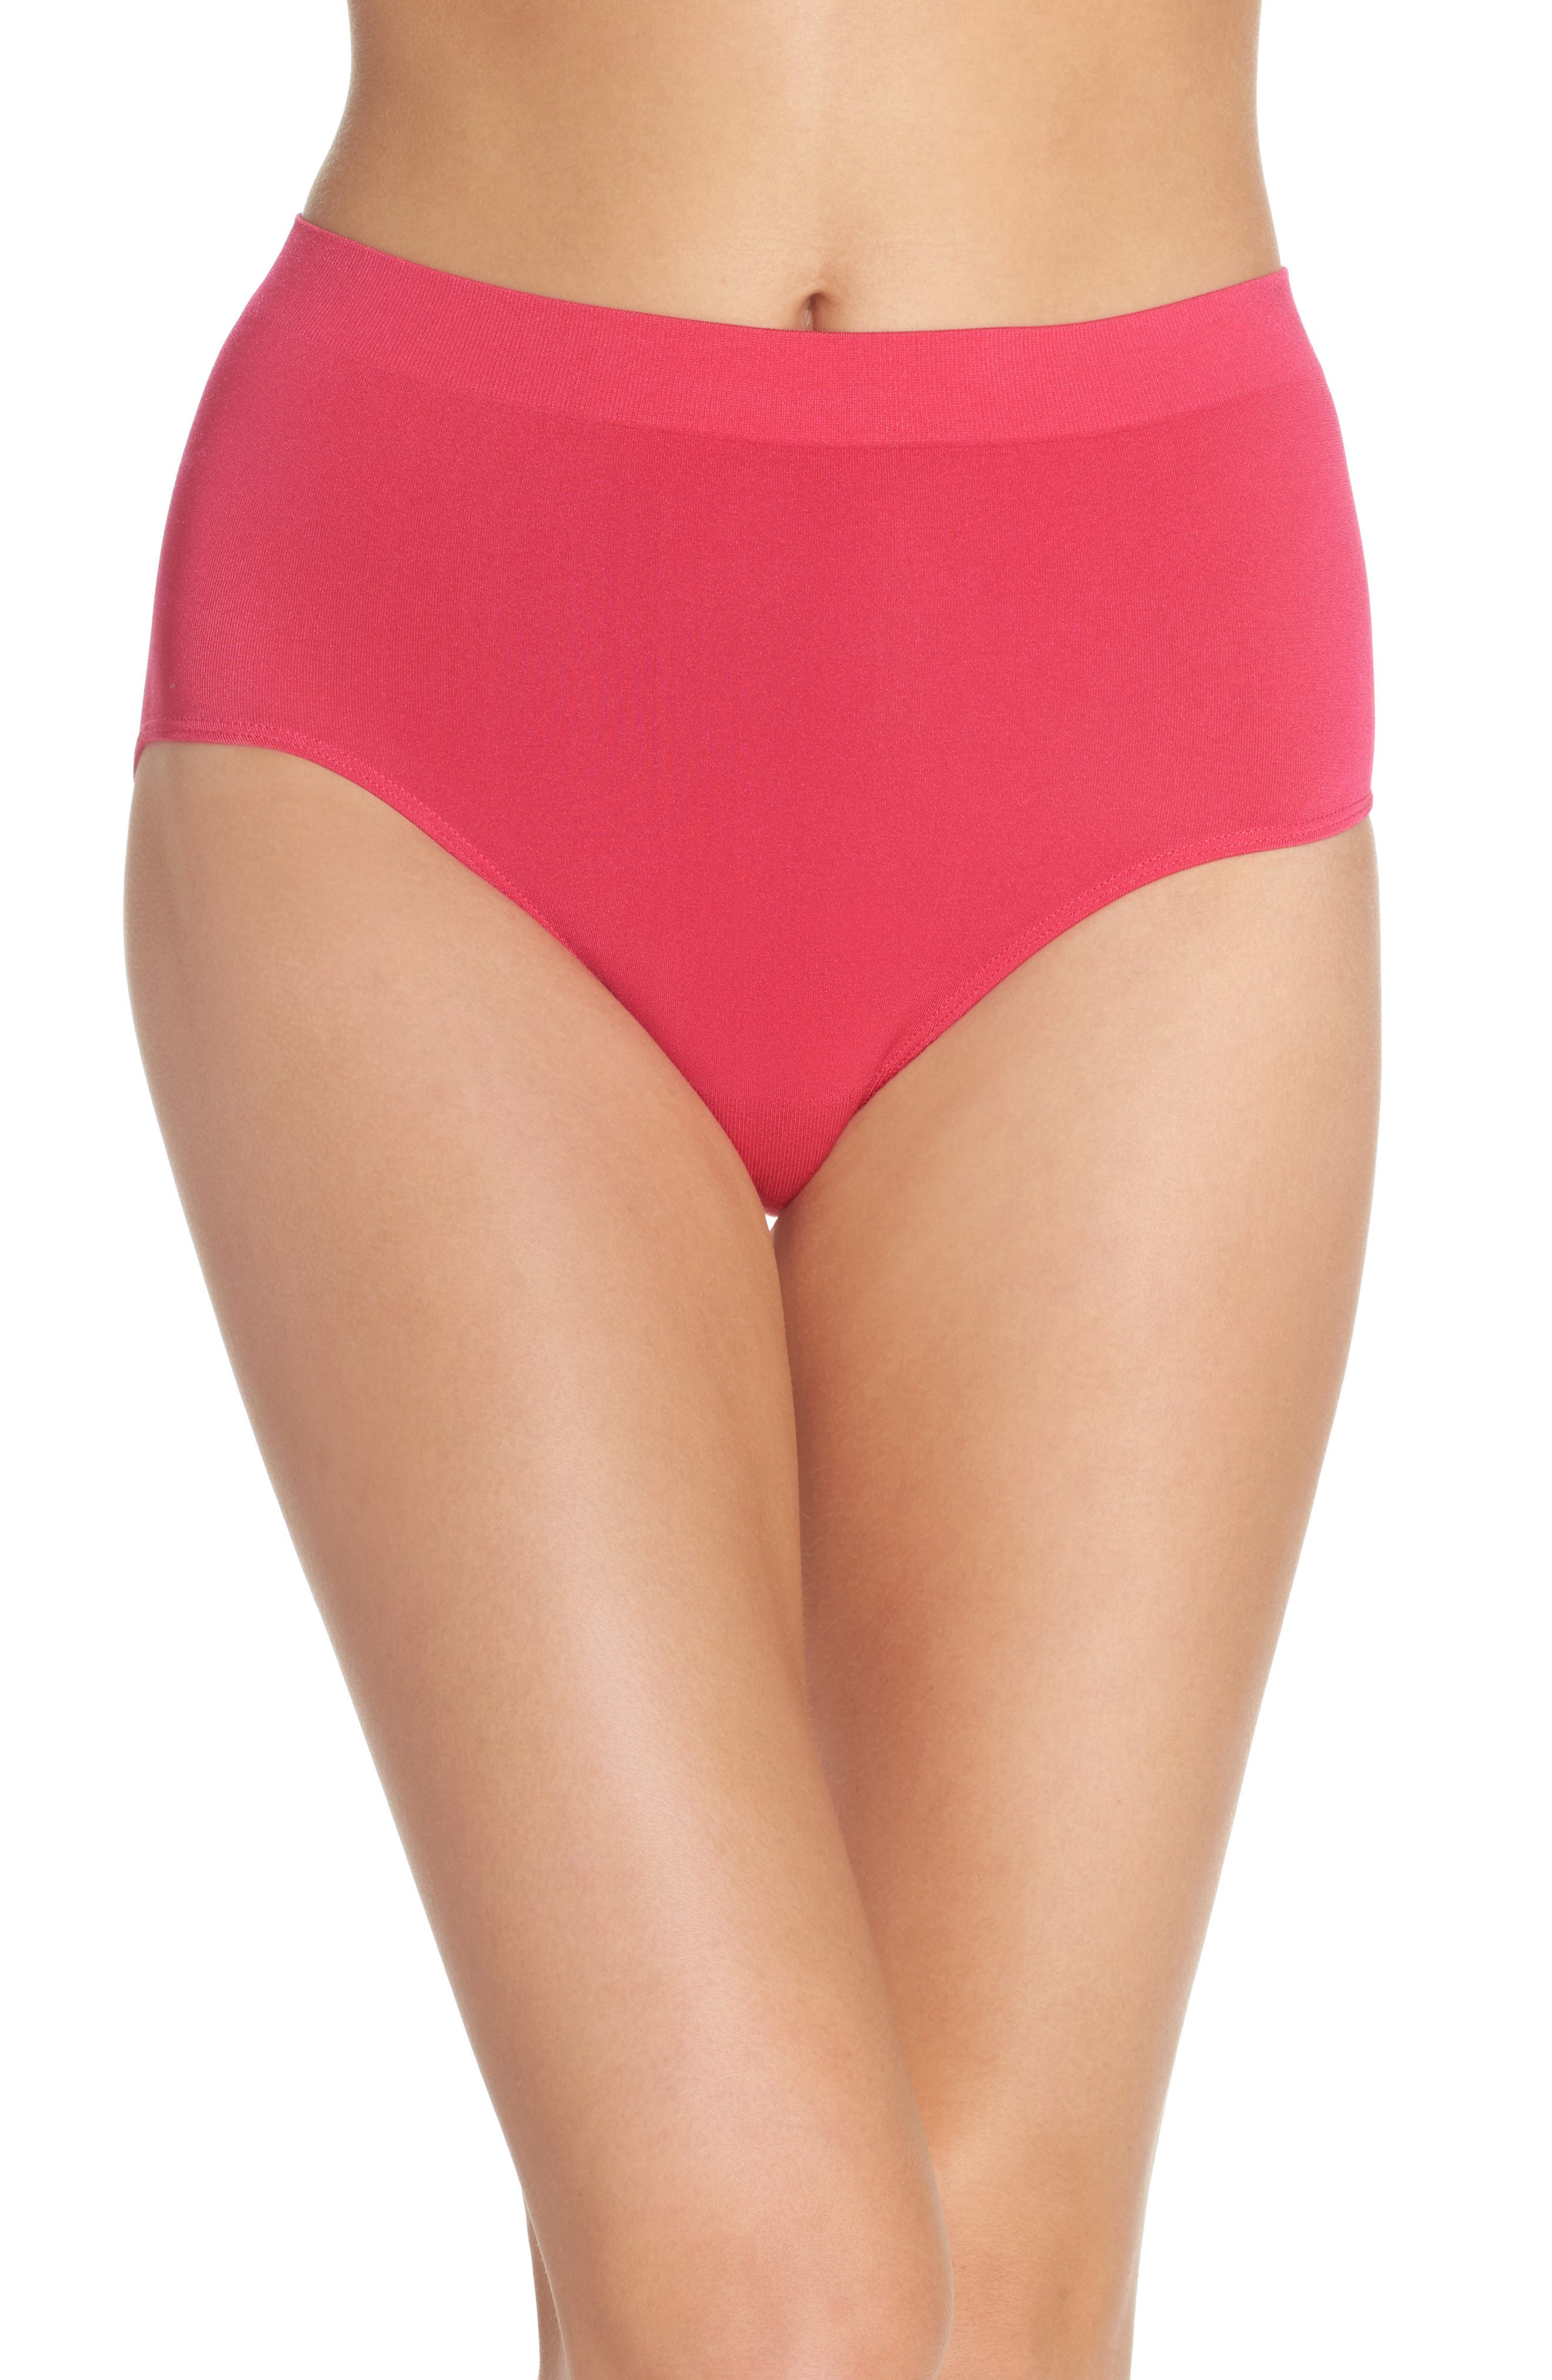 B Smooth Briefs,                         Main,                         color, Pink Peacock